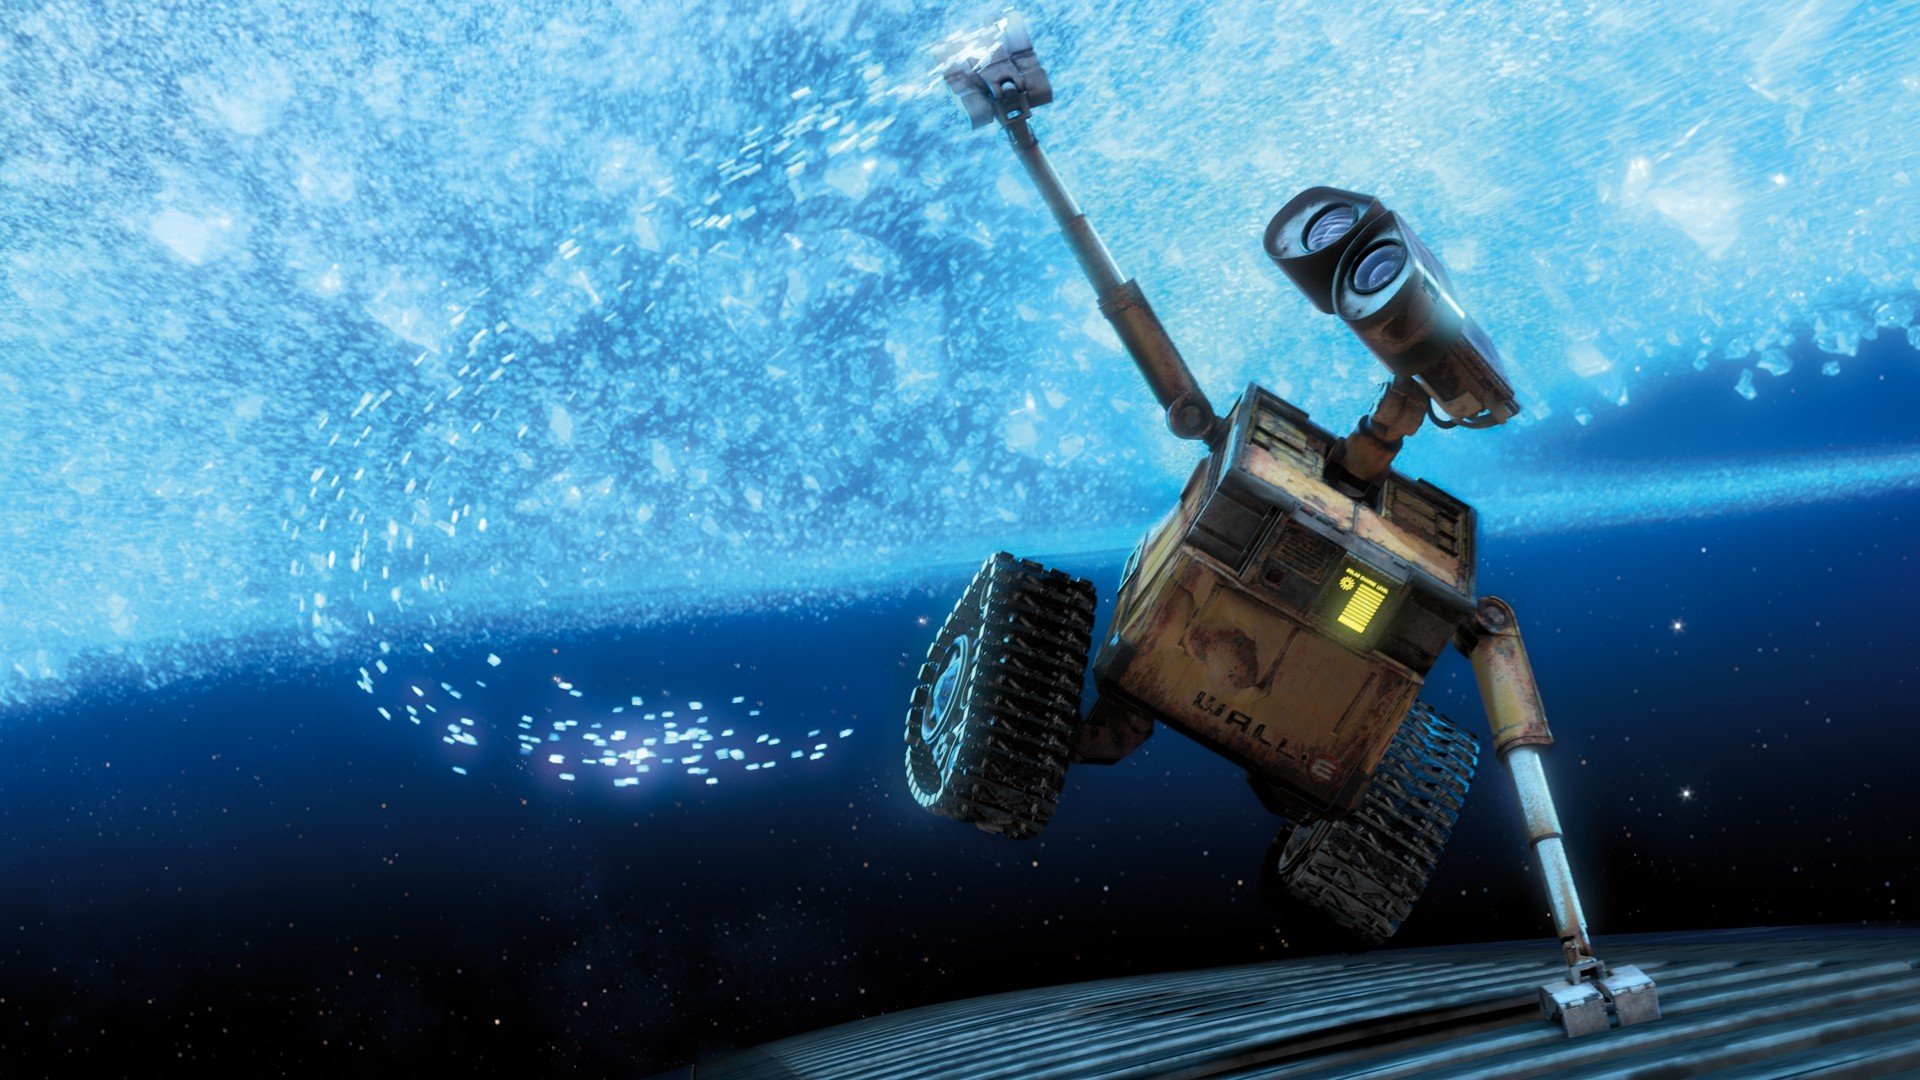 Wall E Wallpaper Android